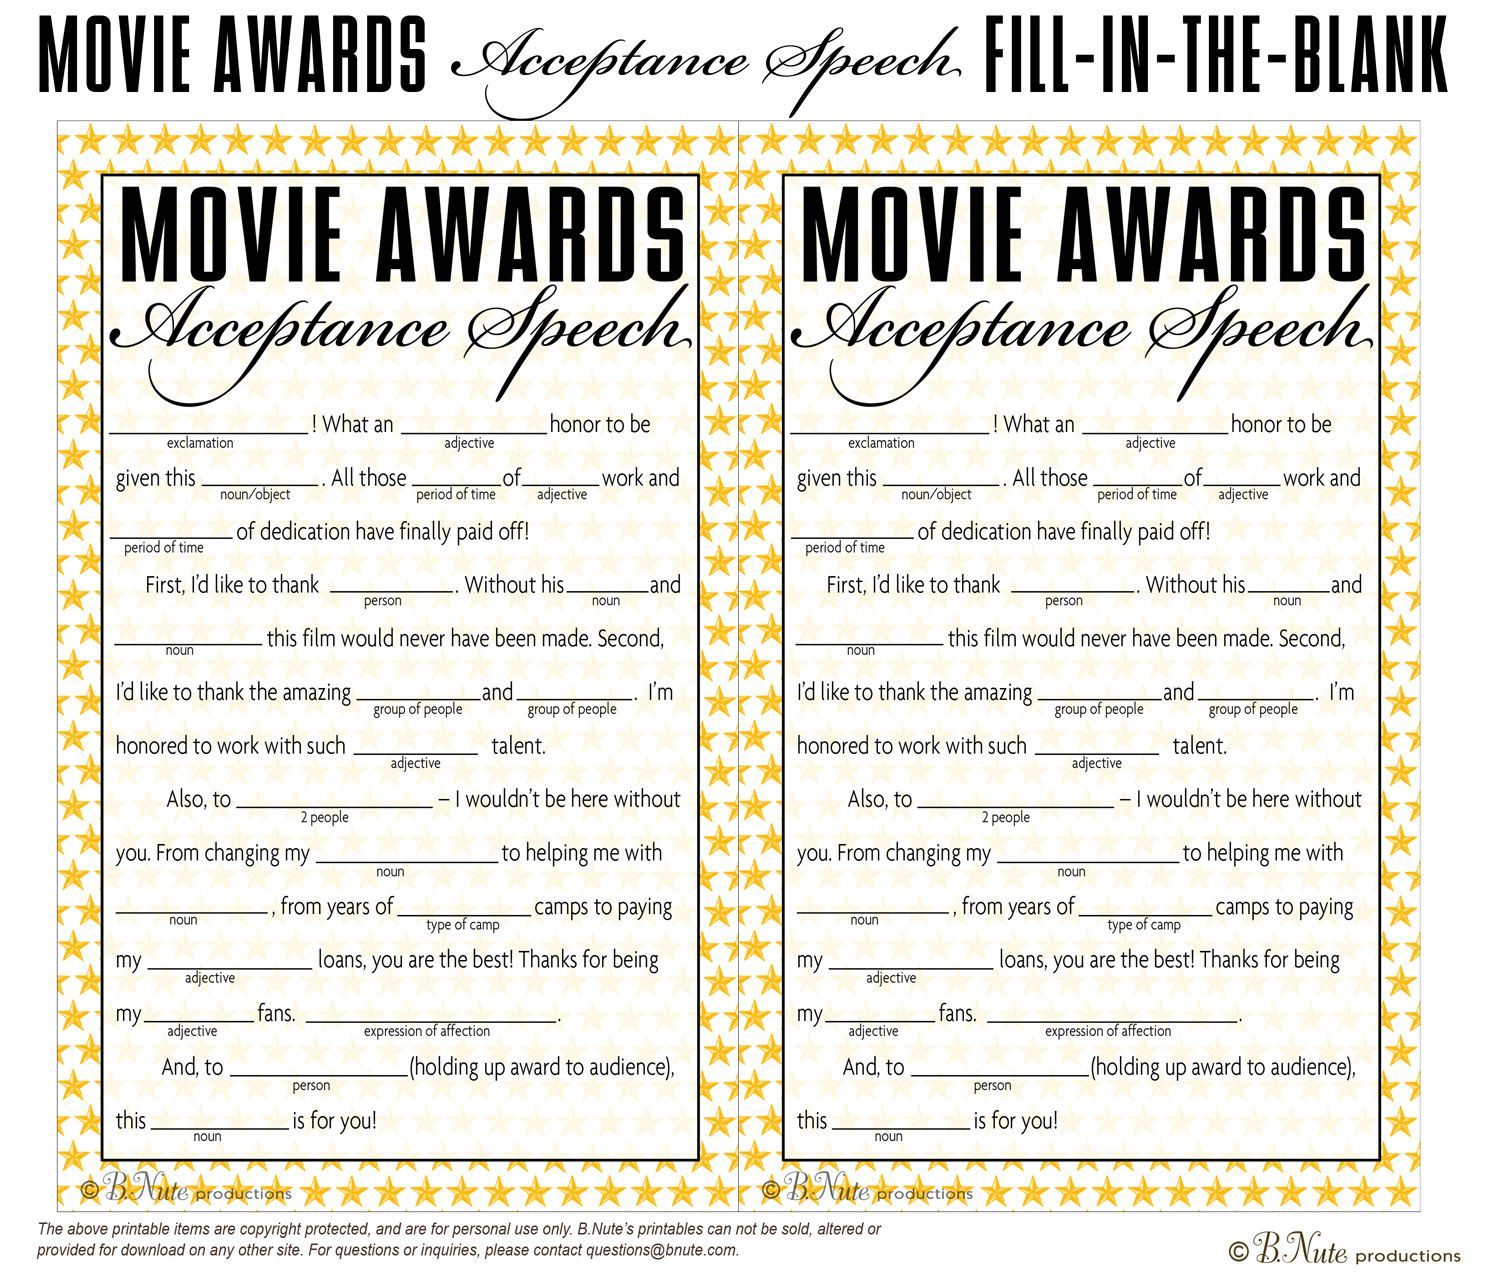 Free Printable Oscar Party Game Acceptance Speech Fill In The